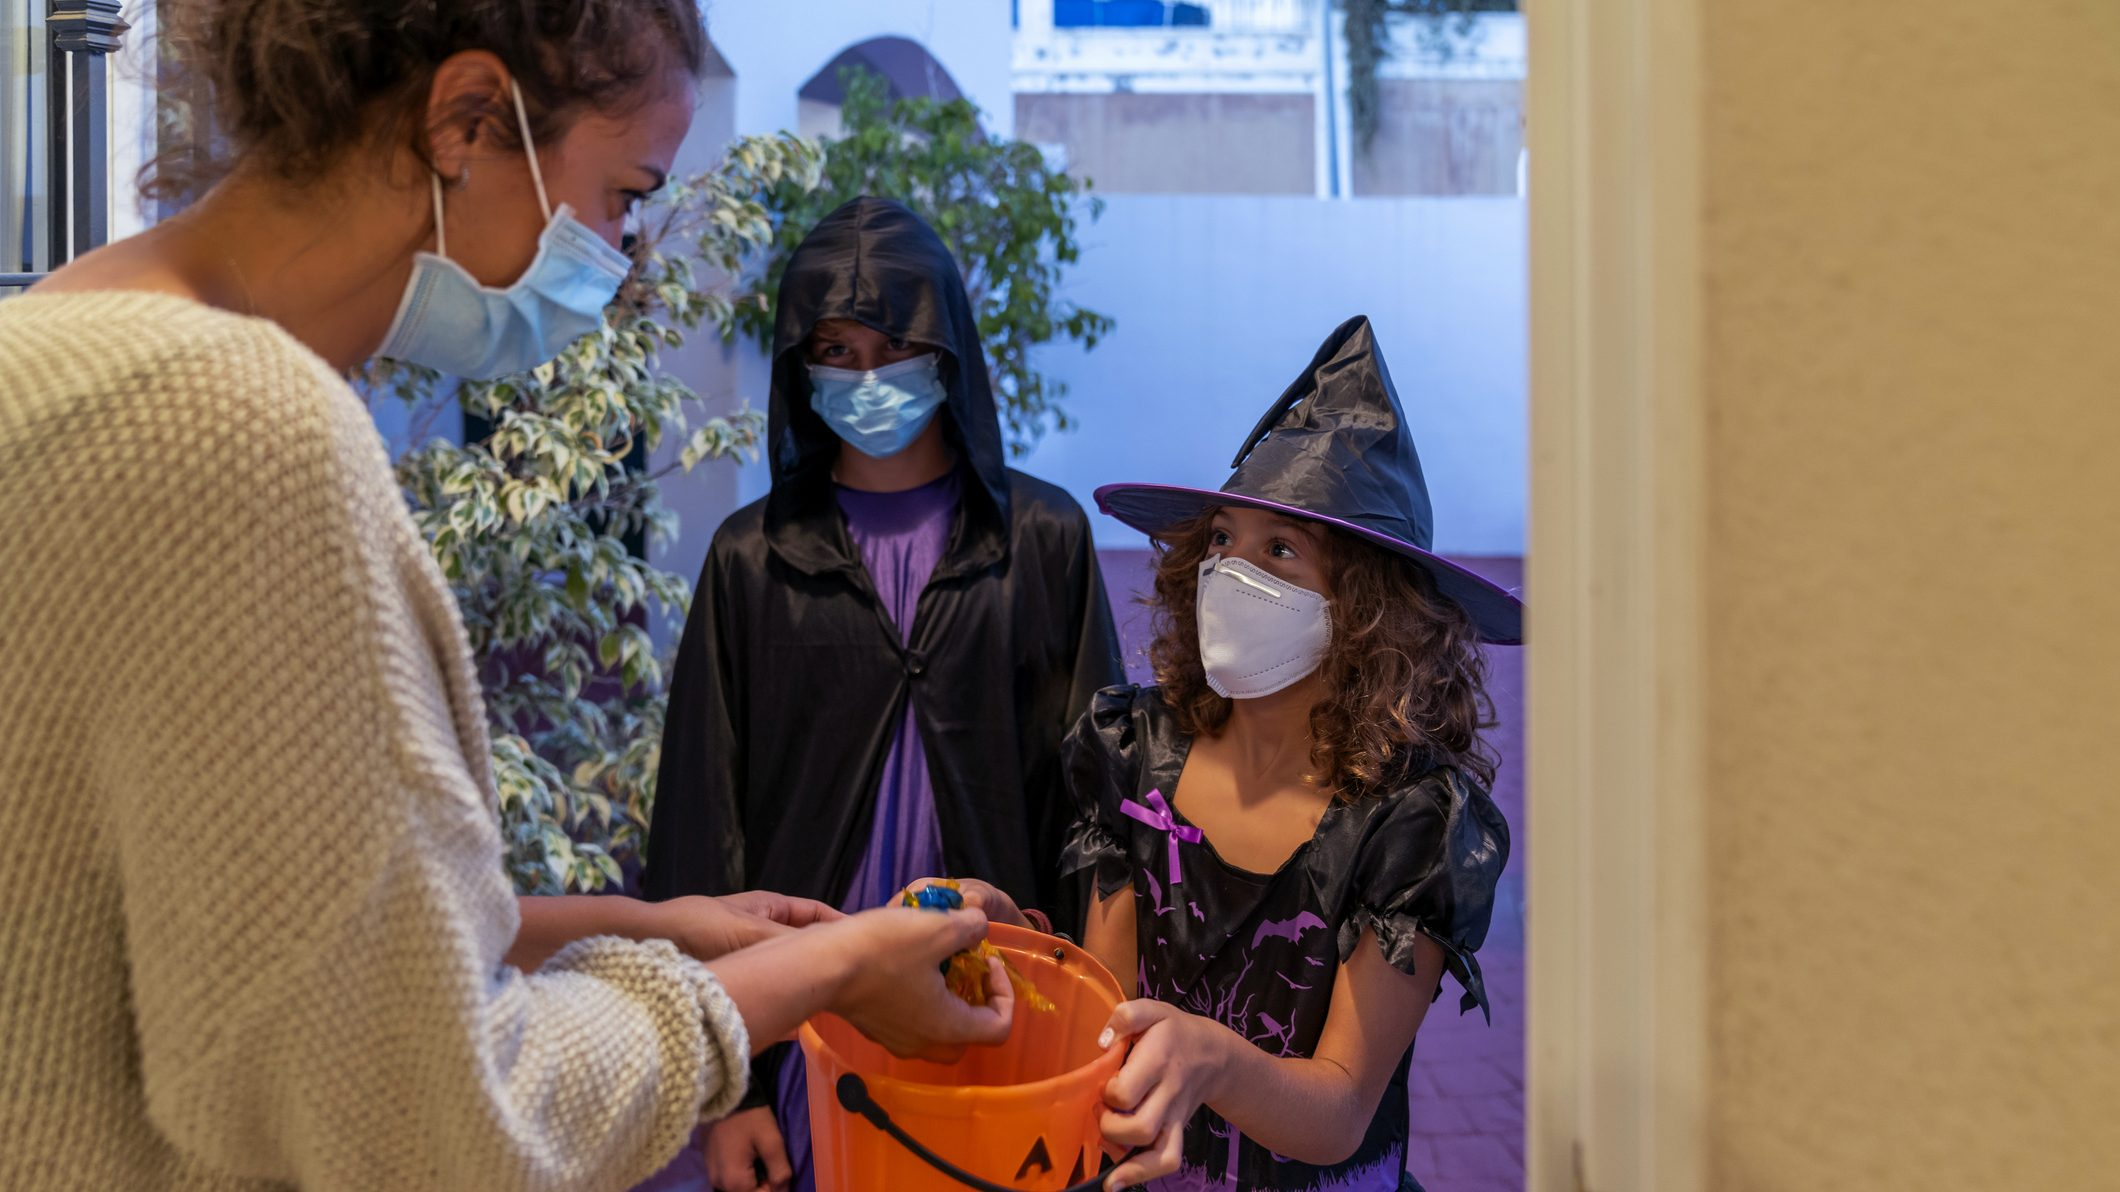 Noblesville Halloween 2020 Trick Or Treat Noblesville releases Halloween guidance, official hours for trick